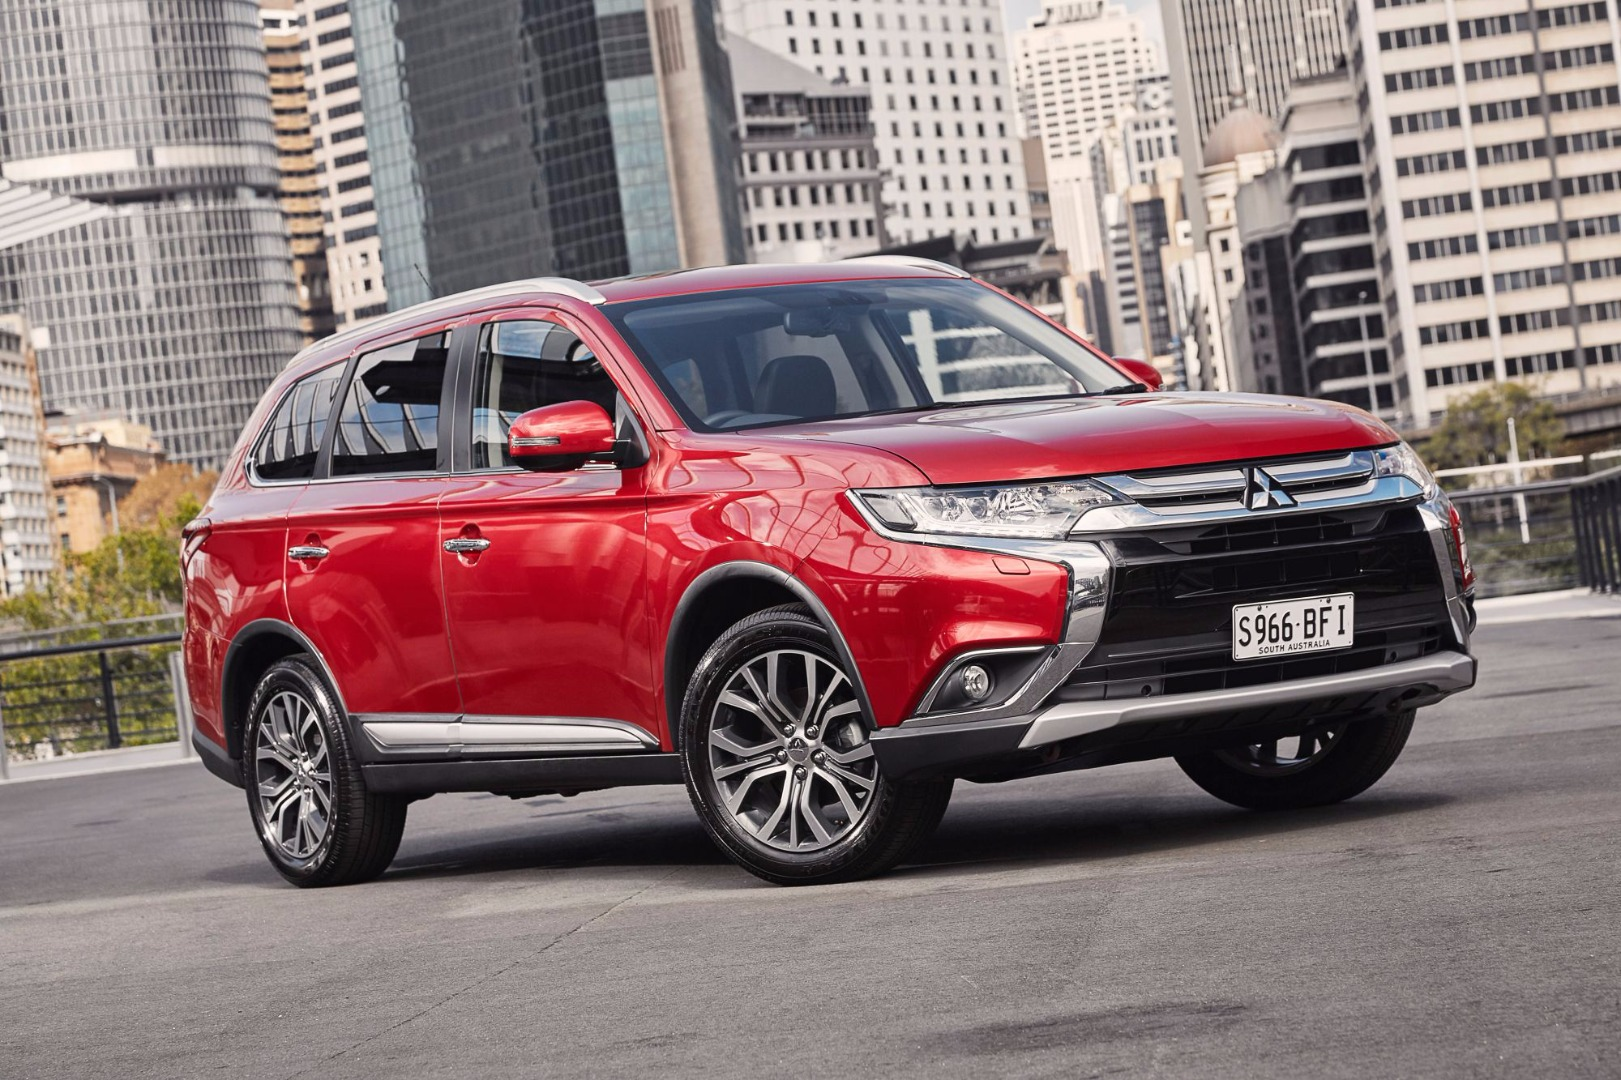 Review - 2017 Mitsubishi Outlander - Review